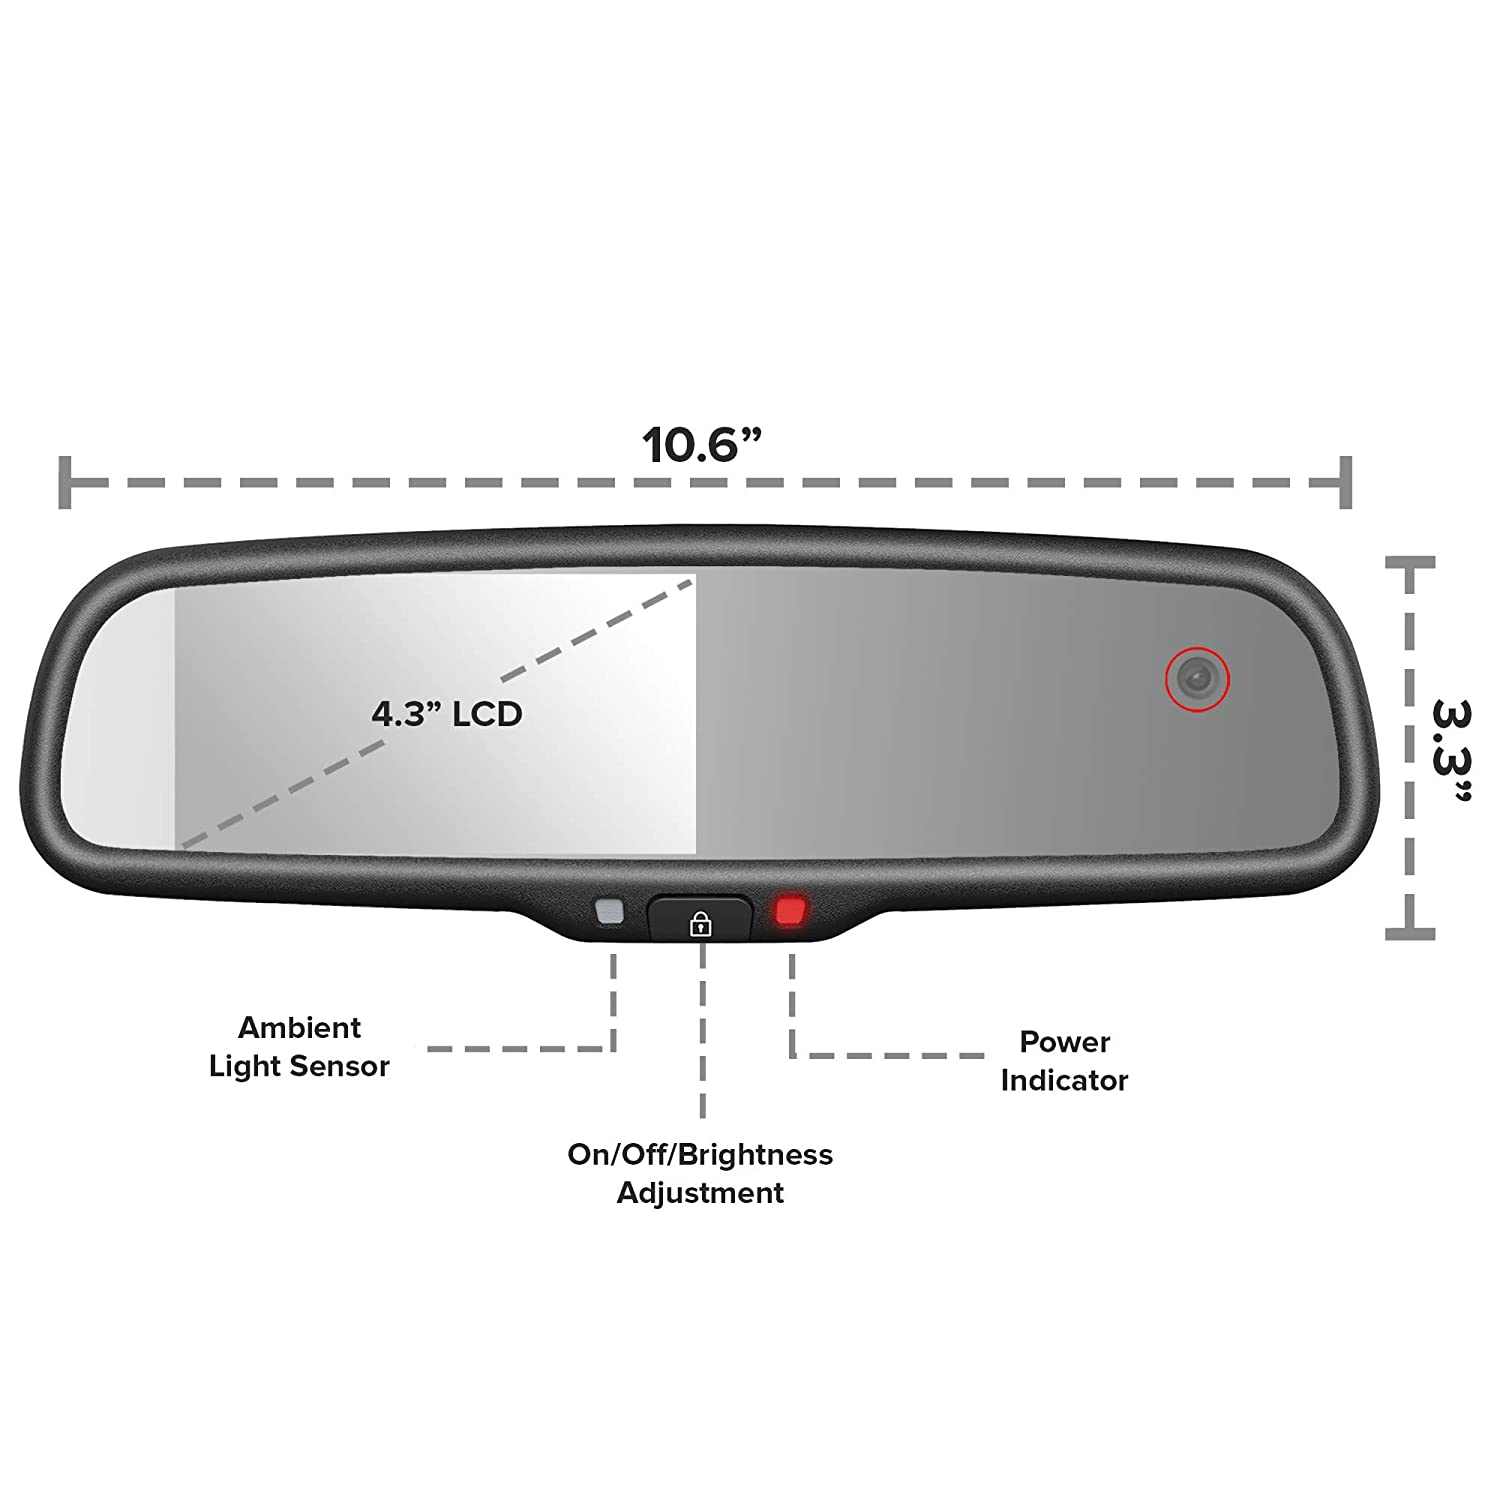 WiFi app CMR-43-E2DVR3 Records Forward and Inside Cabin Passengers Master Tailgaters Rear View Mirror with Dual Camera HD DVR Dash Cam with Microphone